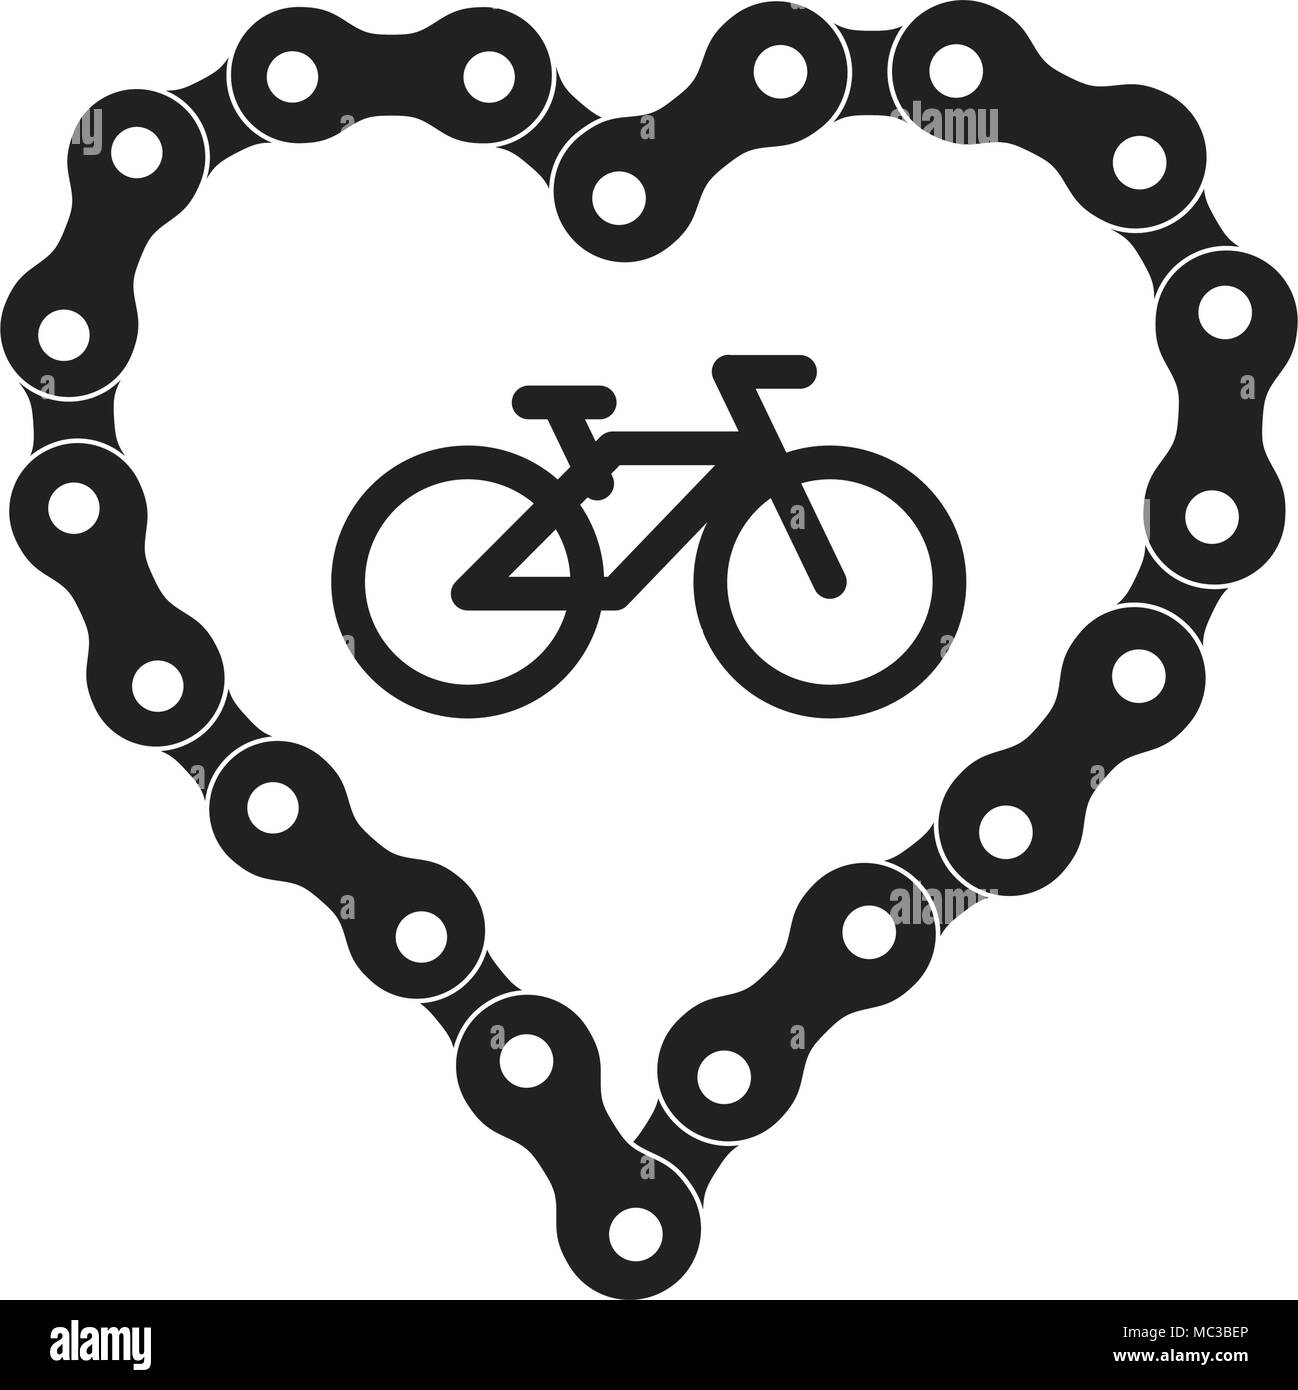 Vector Heart Made of Bike or Bicycle Chain. Black Heart Silhouette Background plus Bicycle Sample Icon - Stock Image